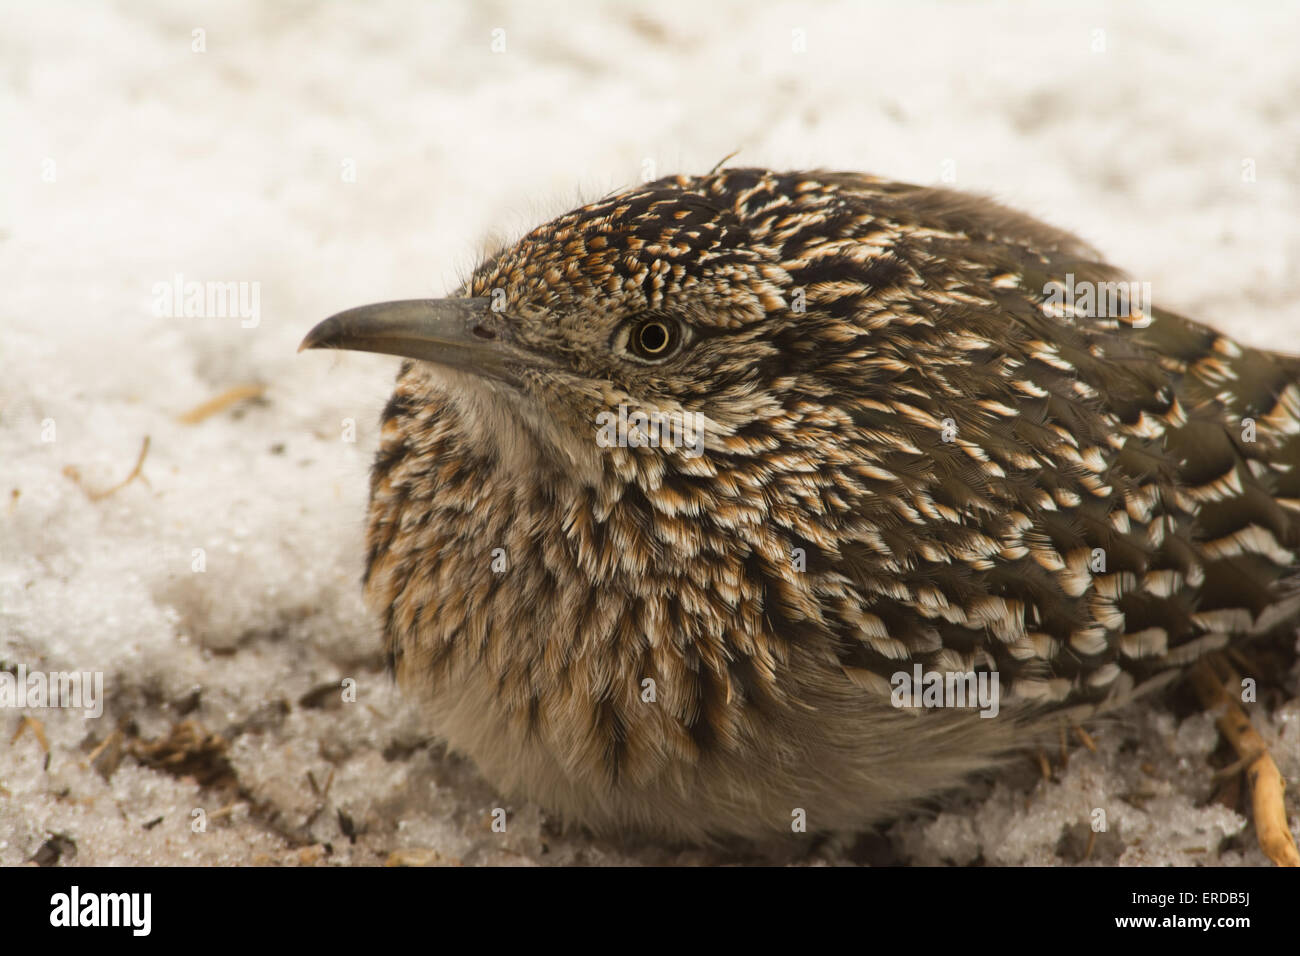 Closeup of a Greater Roadrunner squatting down in snow, waiting for prey - Stock Image